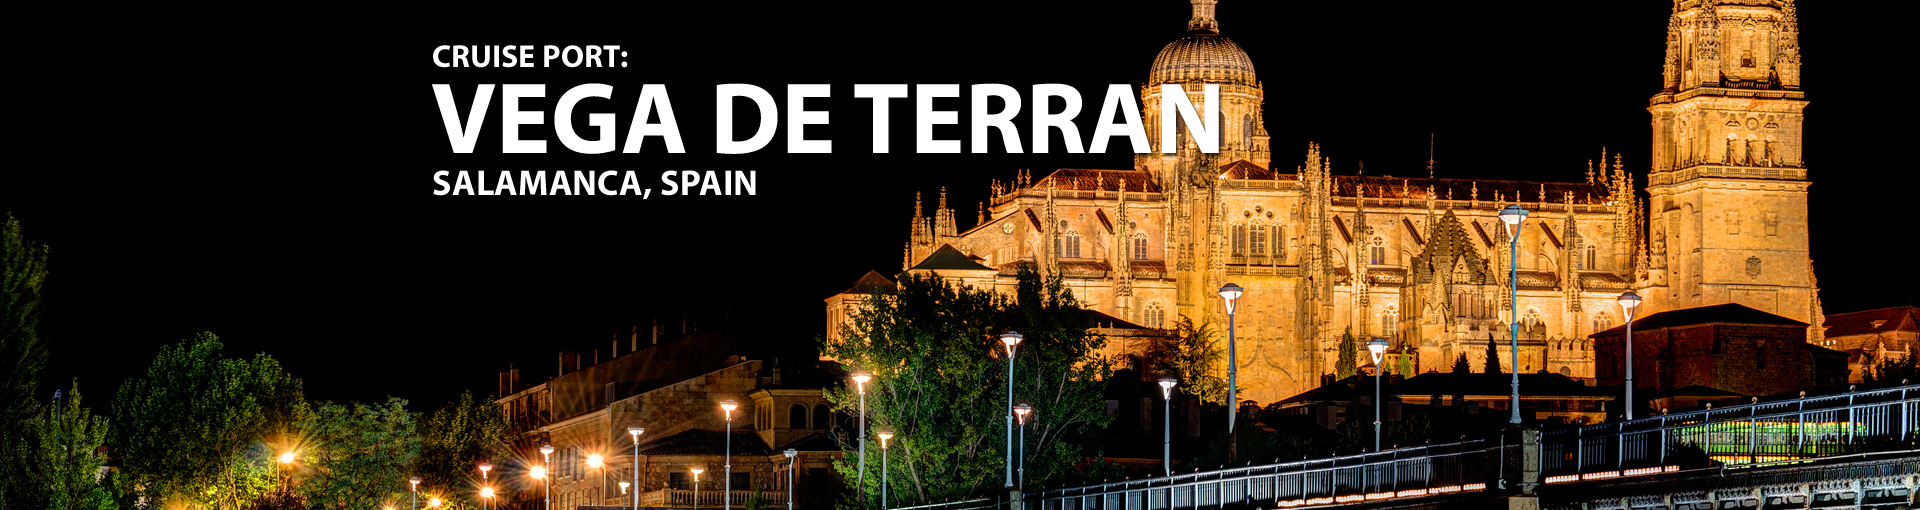 Cruises to Vega de Terran (Salamanca), Spain